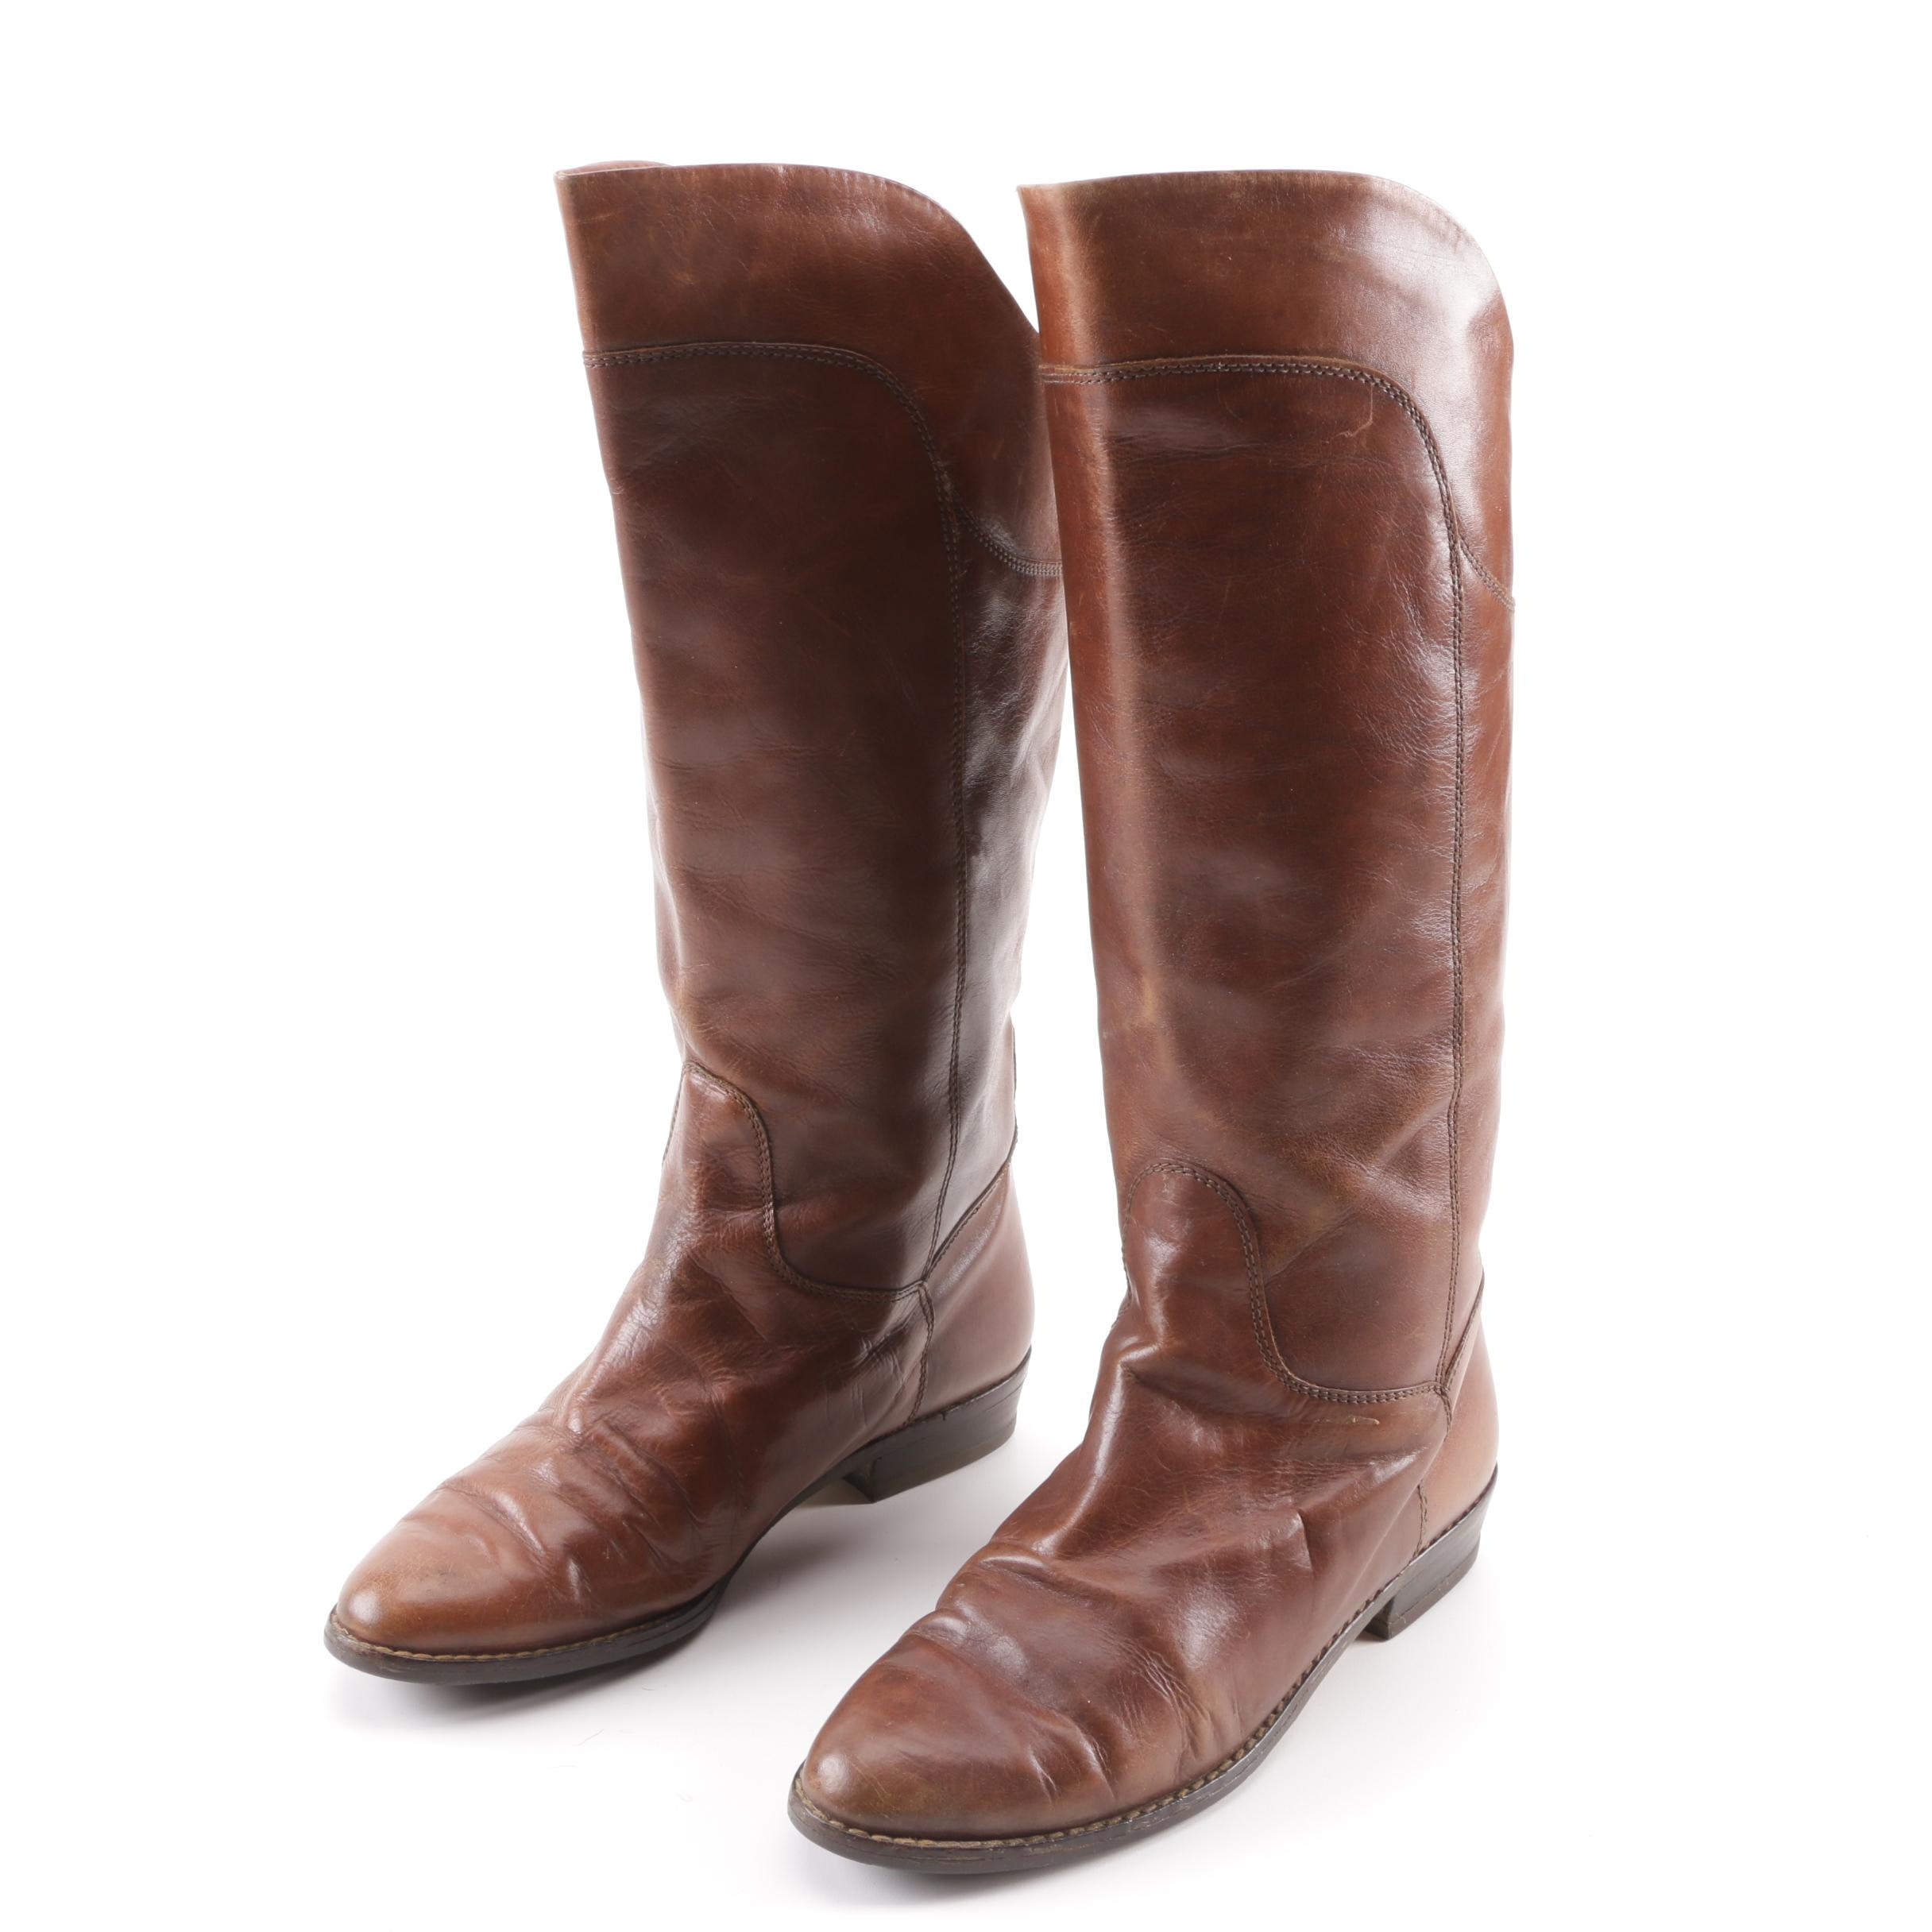 Women's Brown Leather Knee-High Riding Boots